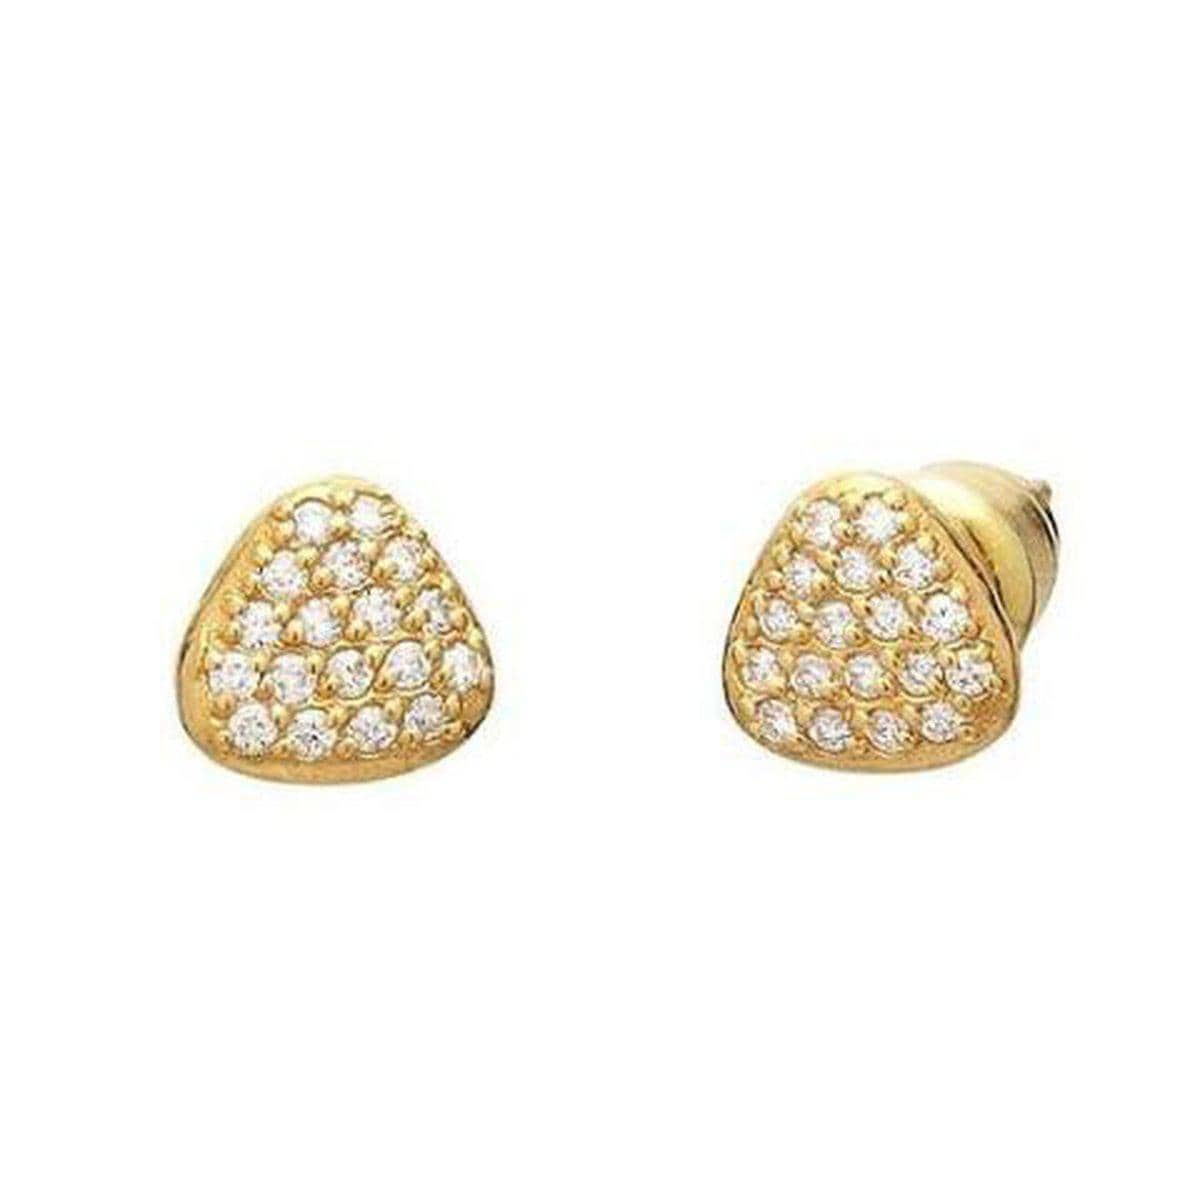 Spell 22K Gold White Diamond Earrings - E-PBLT-DIP-GURHAN-Renee Taylor Gallery